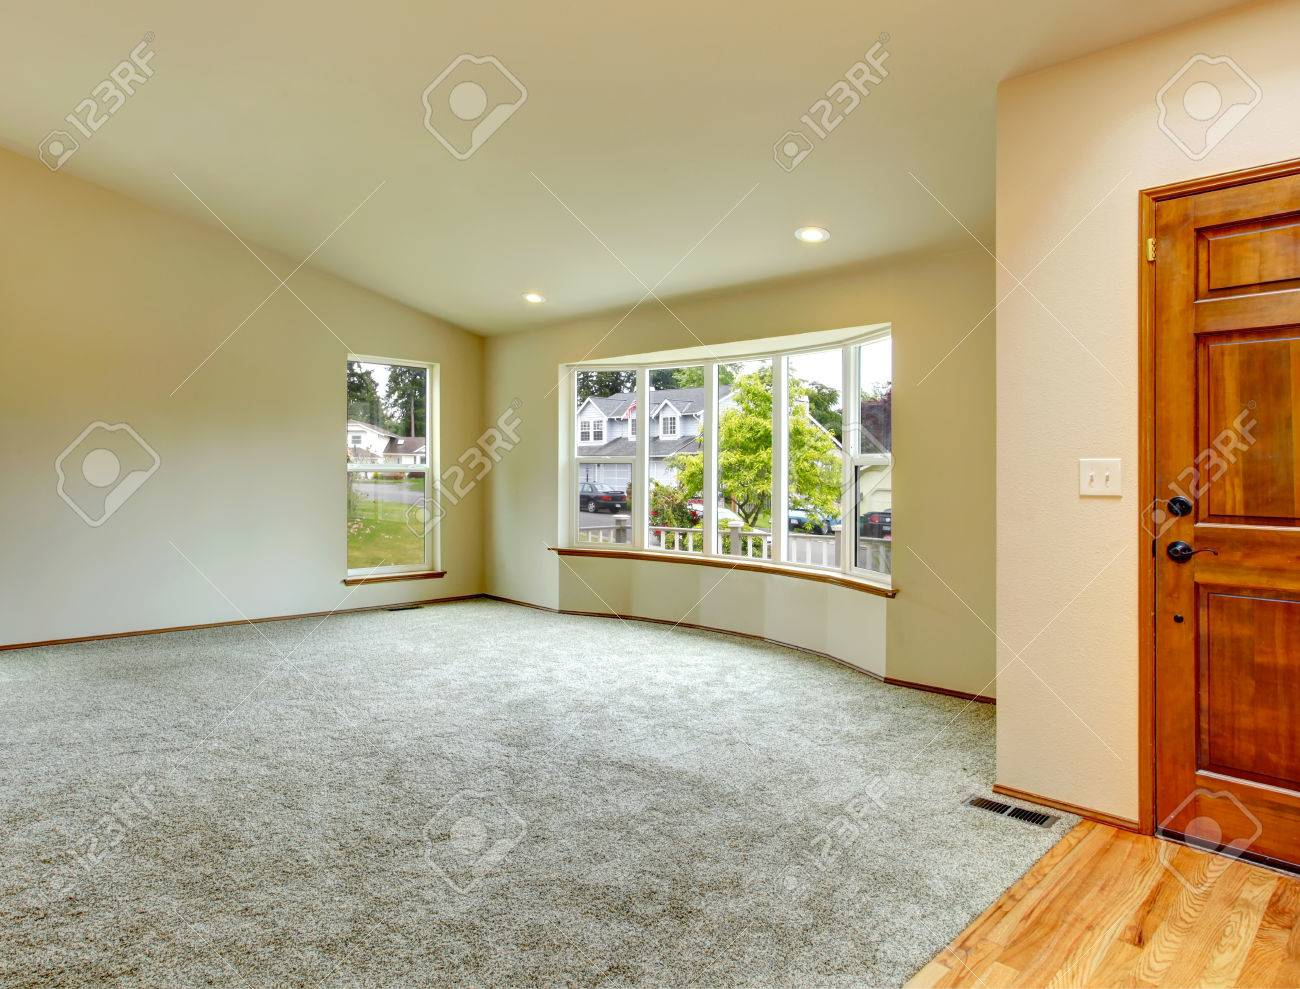 Spacious Empty Living Room With Windows High Vaulted Ceiling